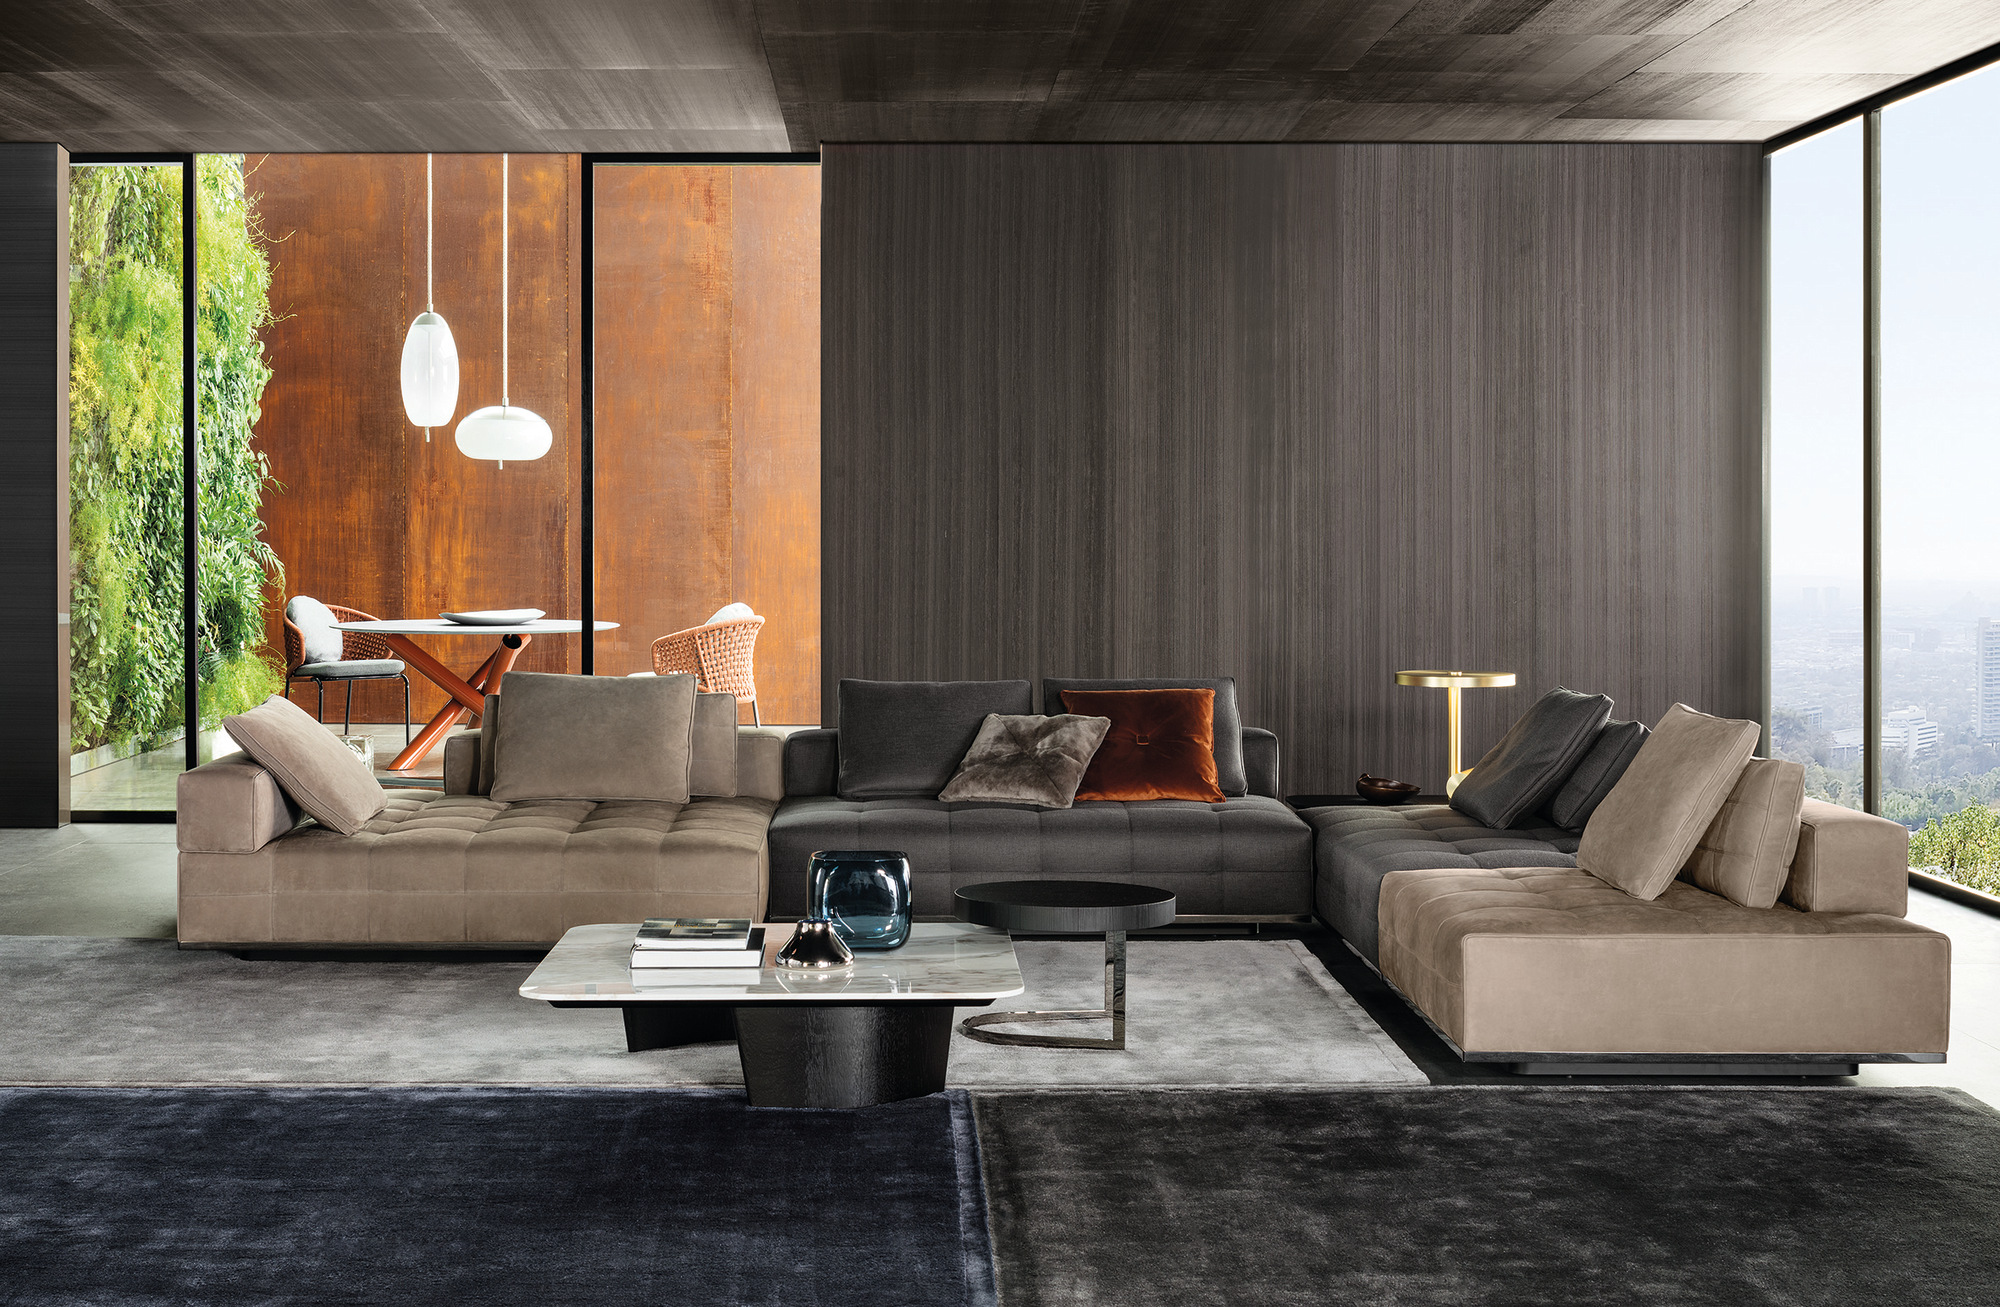 Lawrence Clan Lawrence Collection By Minotti